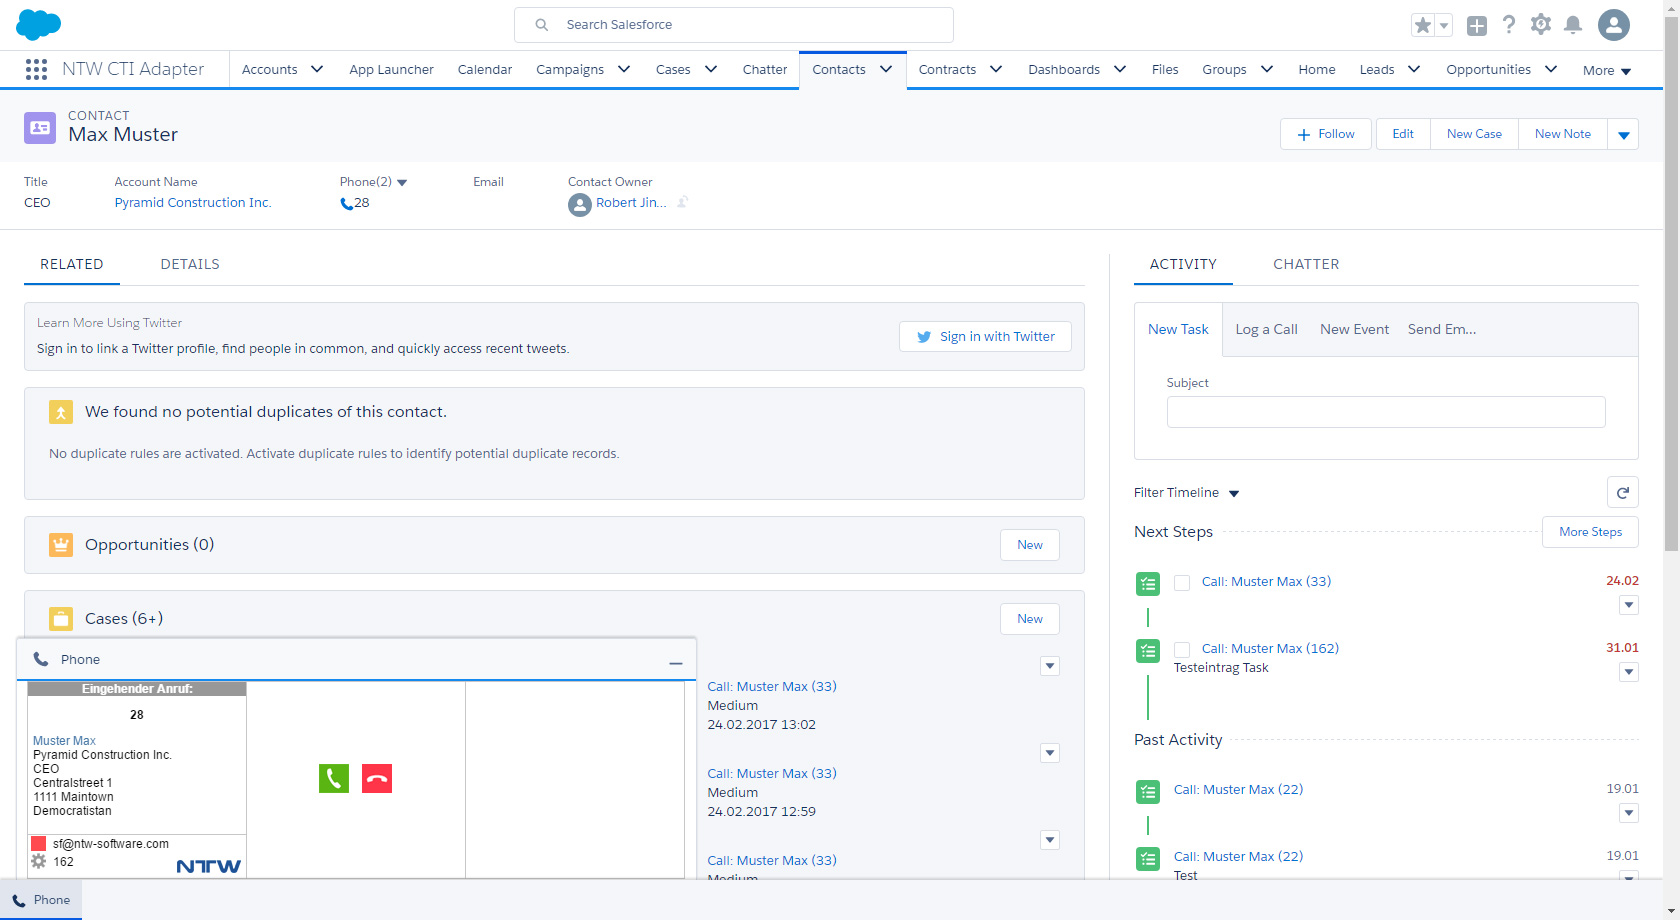 Integration of the CTI client into the Salesforce interface: incoming call